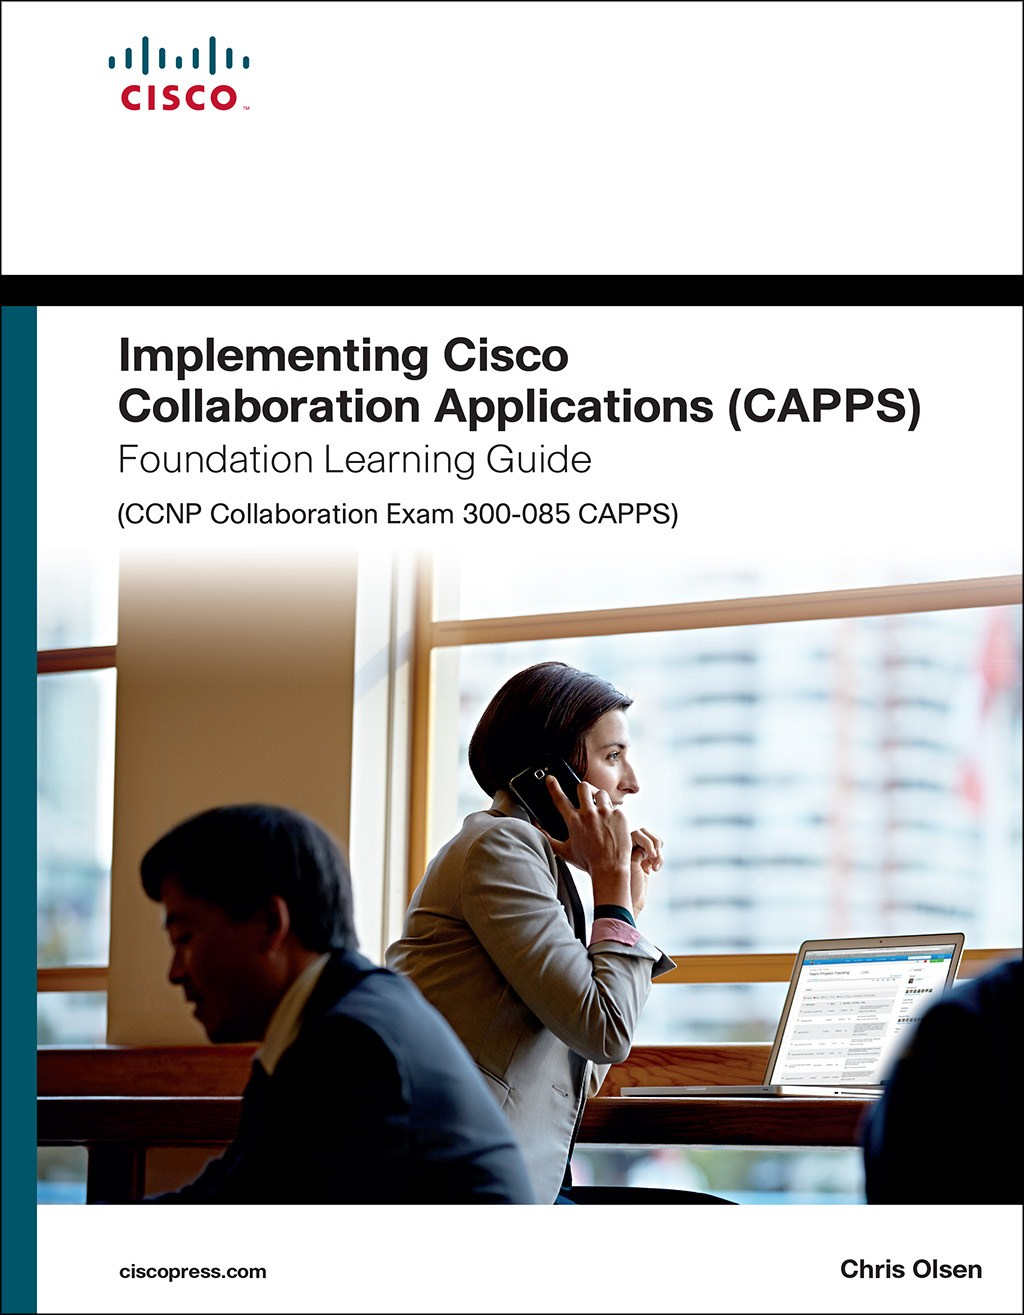 Implementing Cisco Collaboration Applications (CAPPS) Foundation Learning Guide (CCNP Collaboration Exam 300-085 CAPPS)